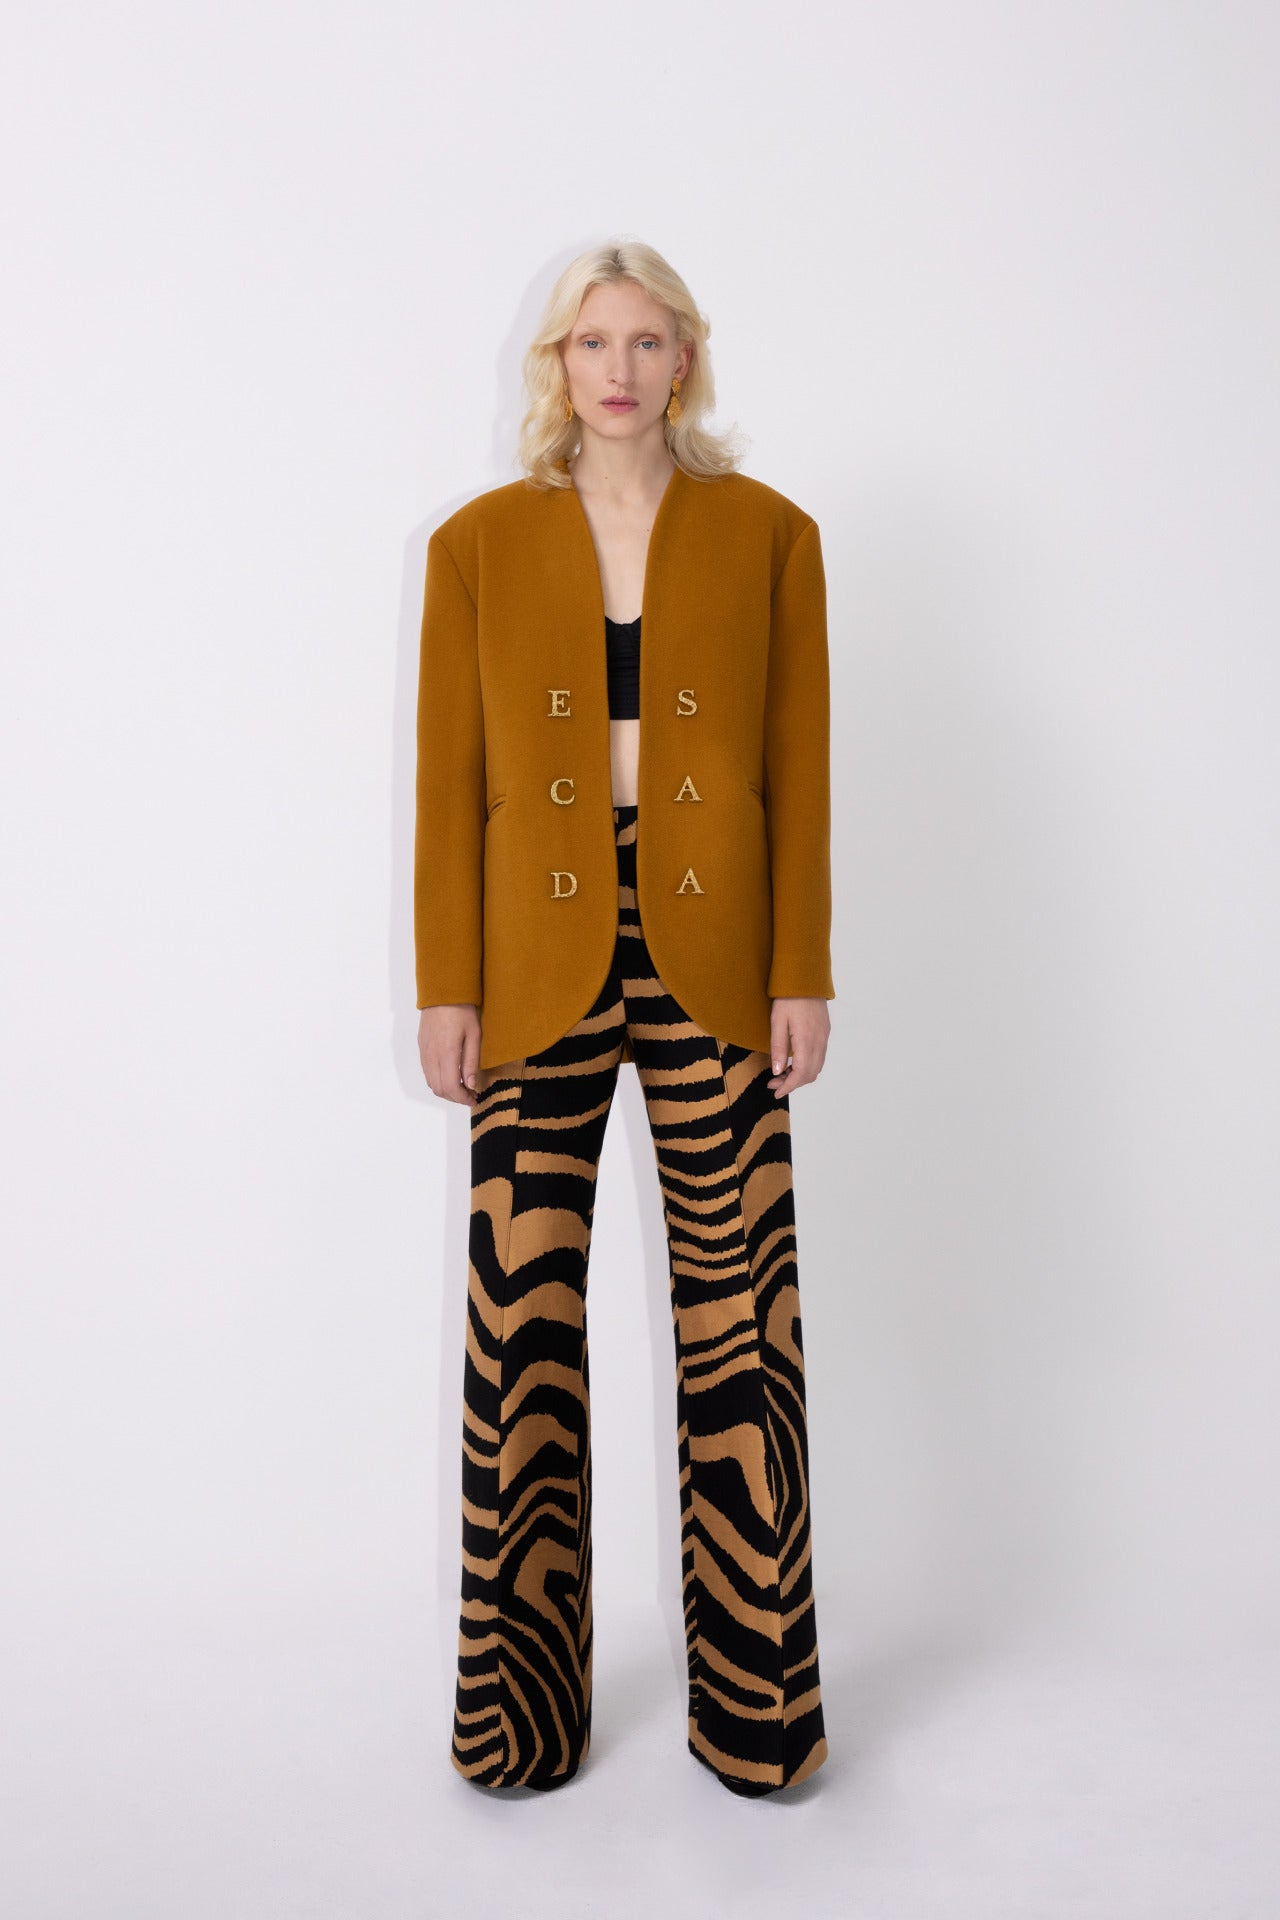 ESCADA Fall/Winter 2020 Blazer with golden ESCADA letters zebra pants